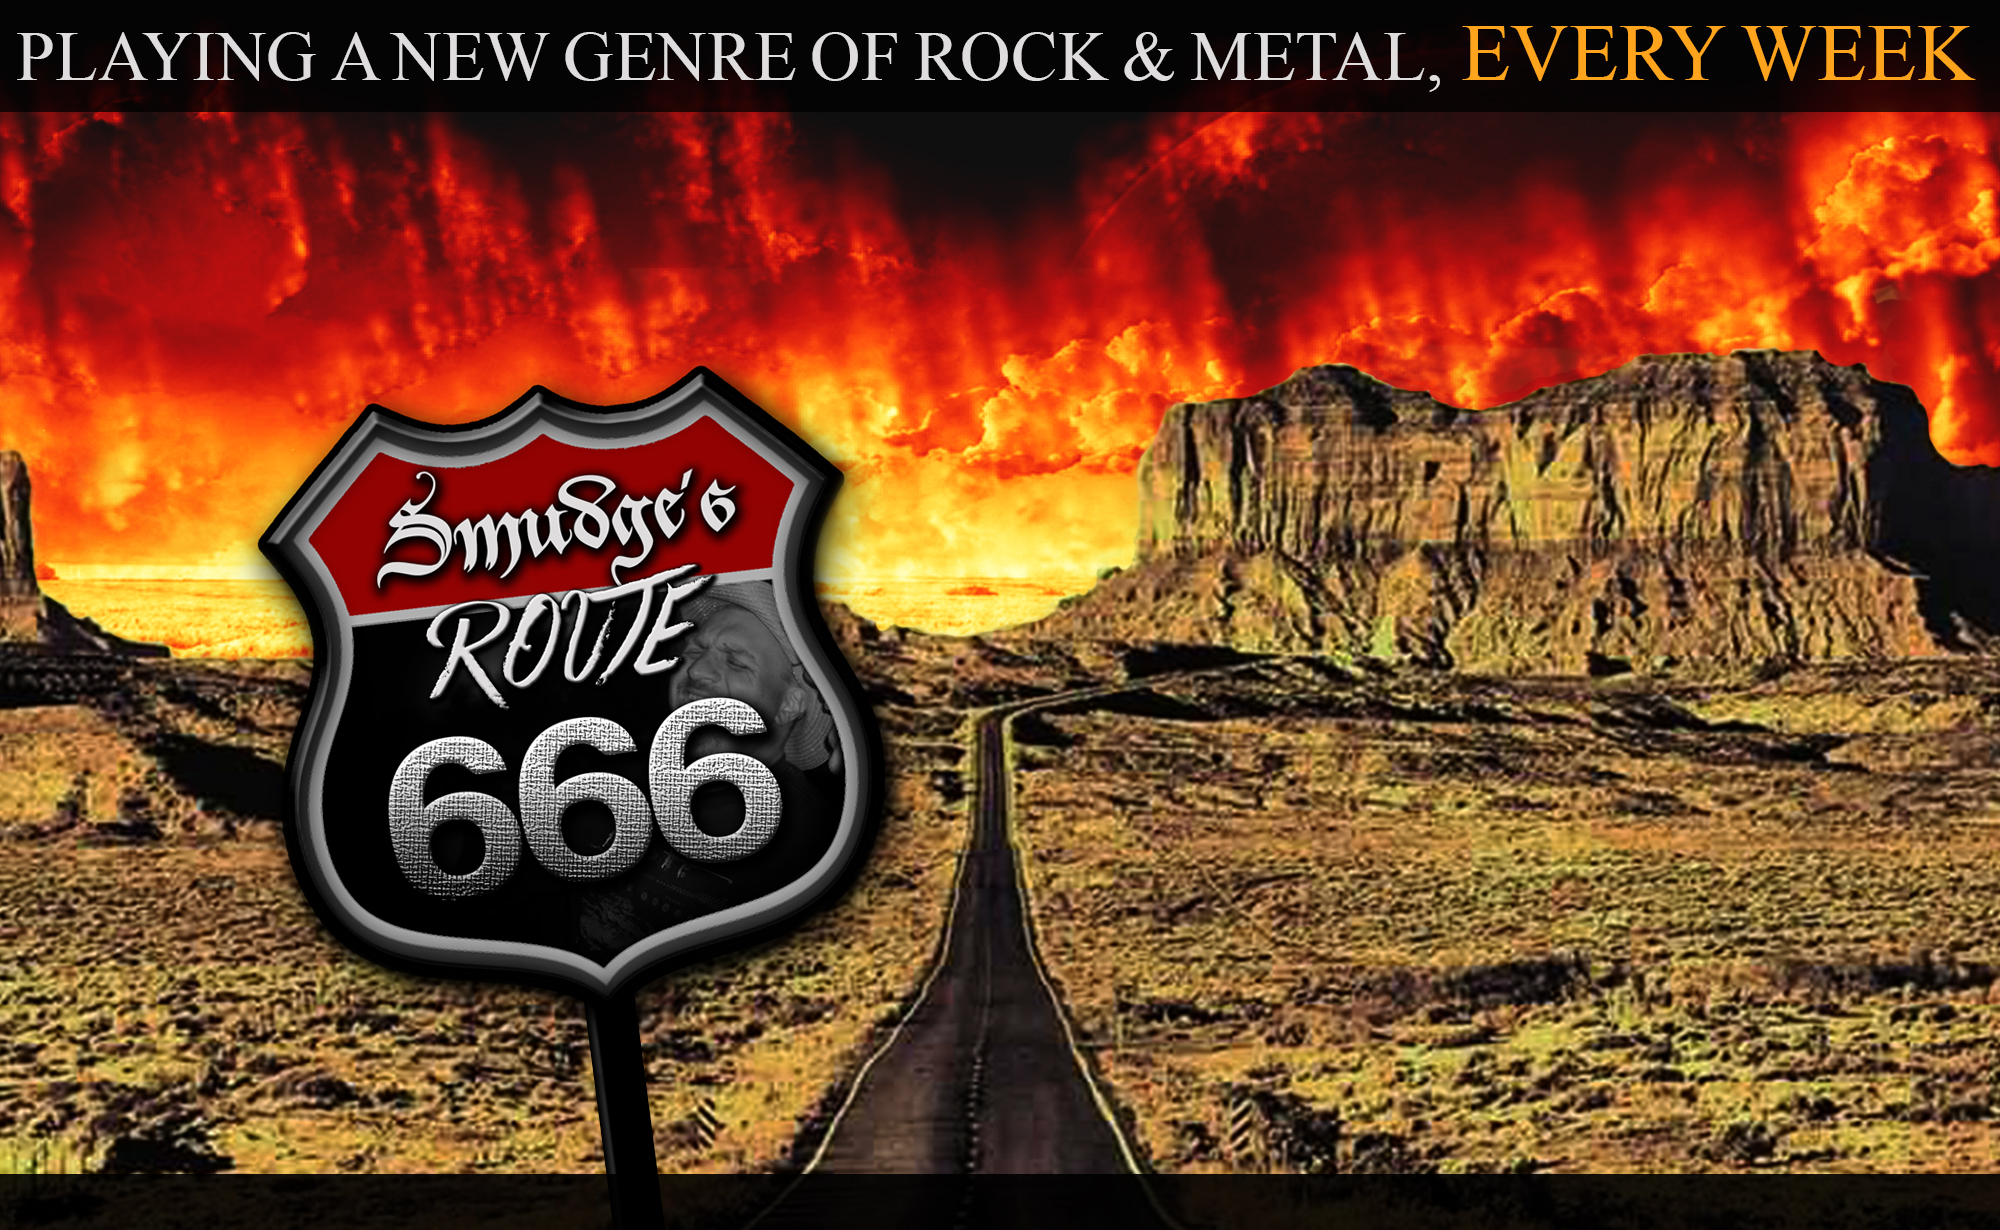 Route 666 23.10.17 AOR - Melodic Rock